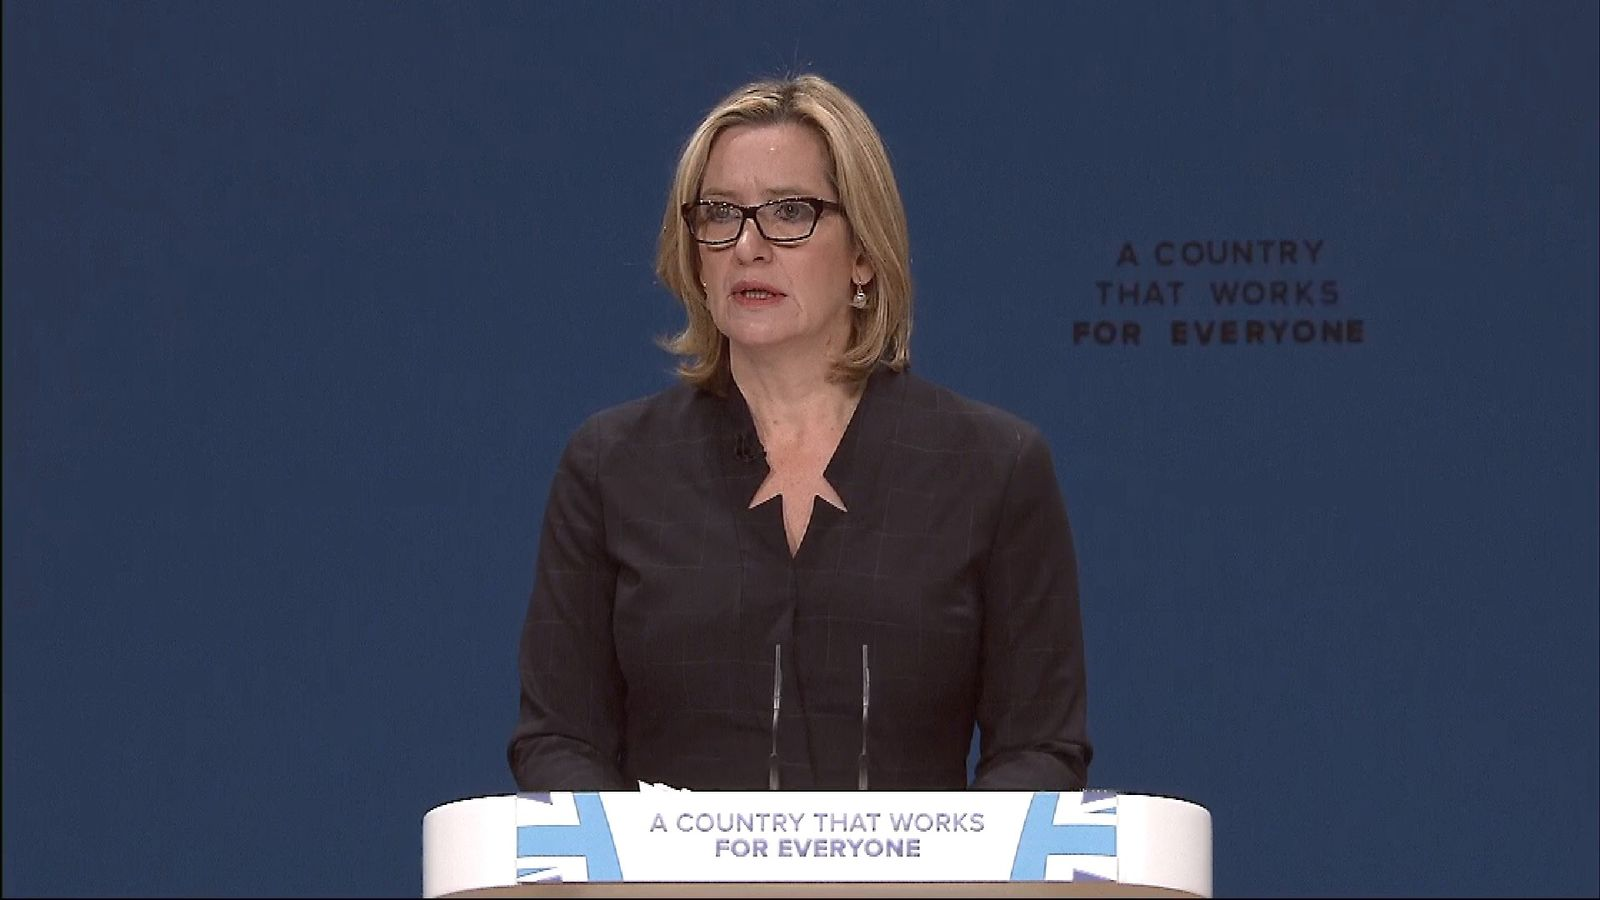 Home Secretary Amber Rudd speaks at Conservative Party Conference 2016